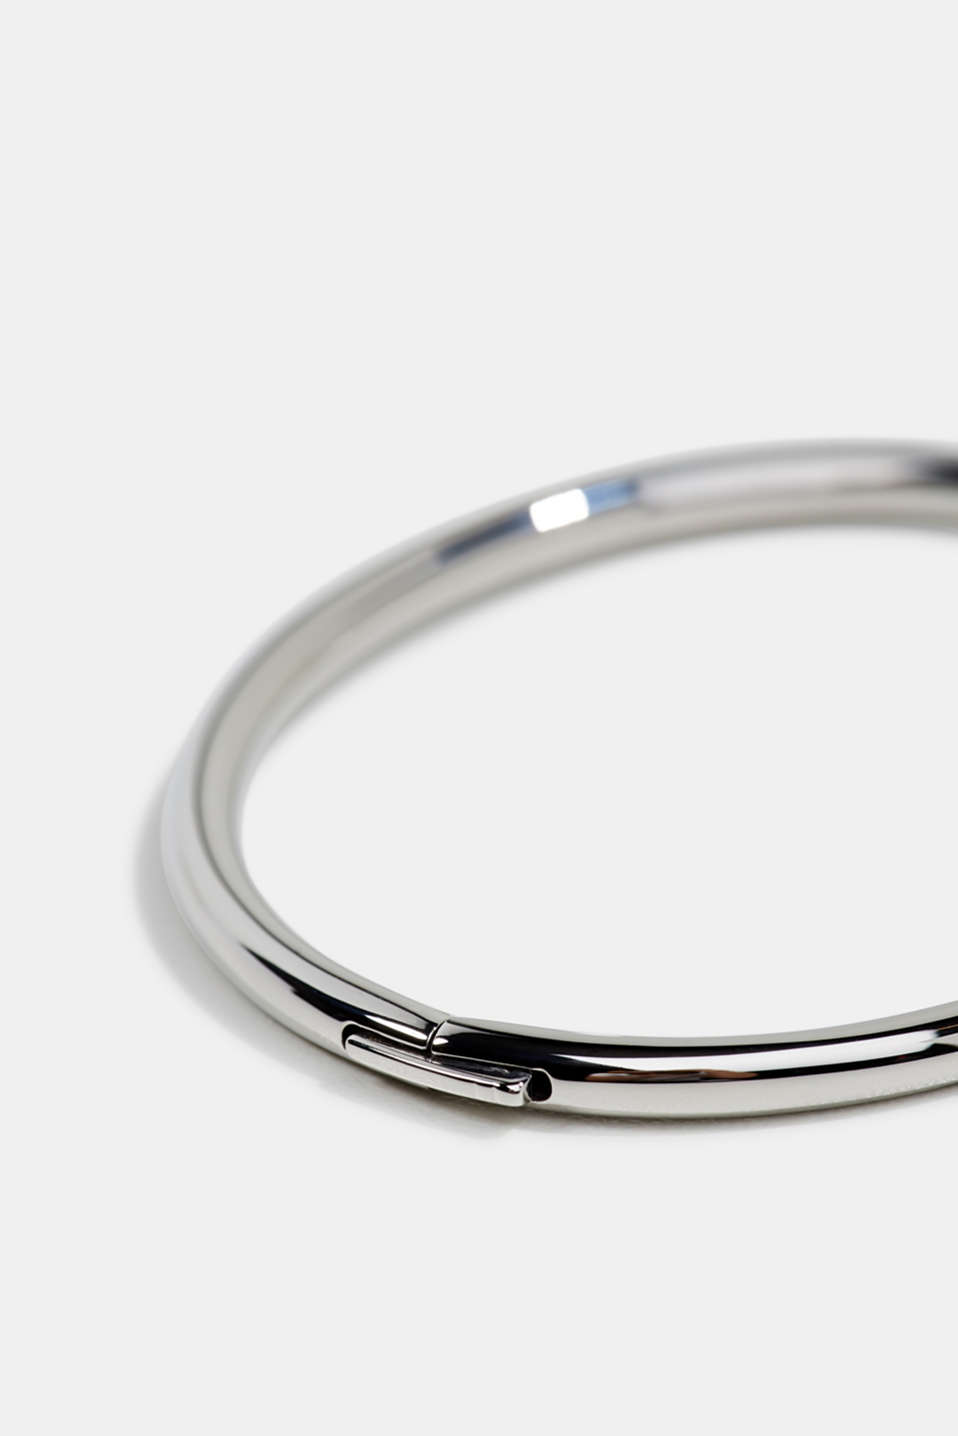 Bangle made of stainless steel, LCSILVER, detail image number 1